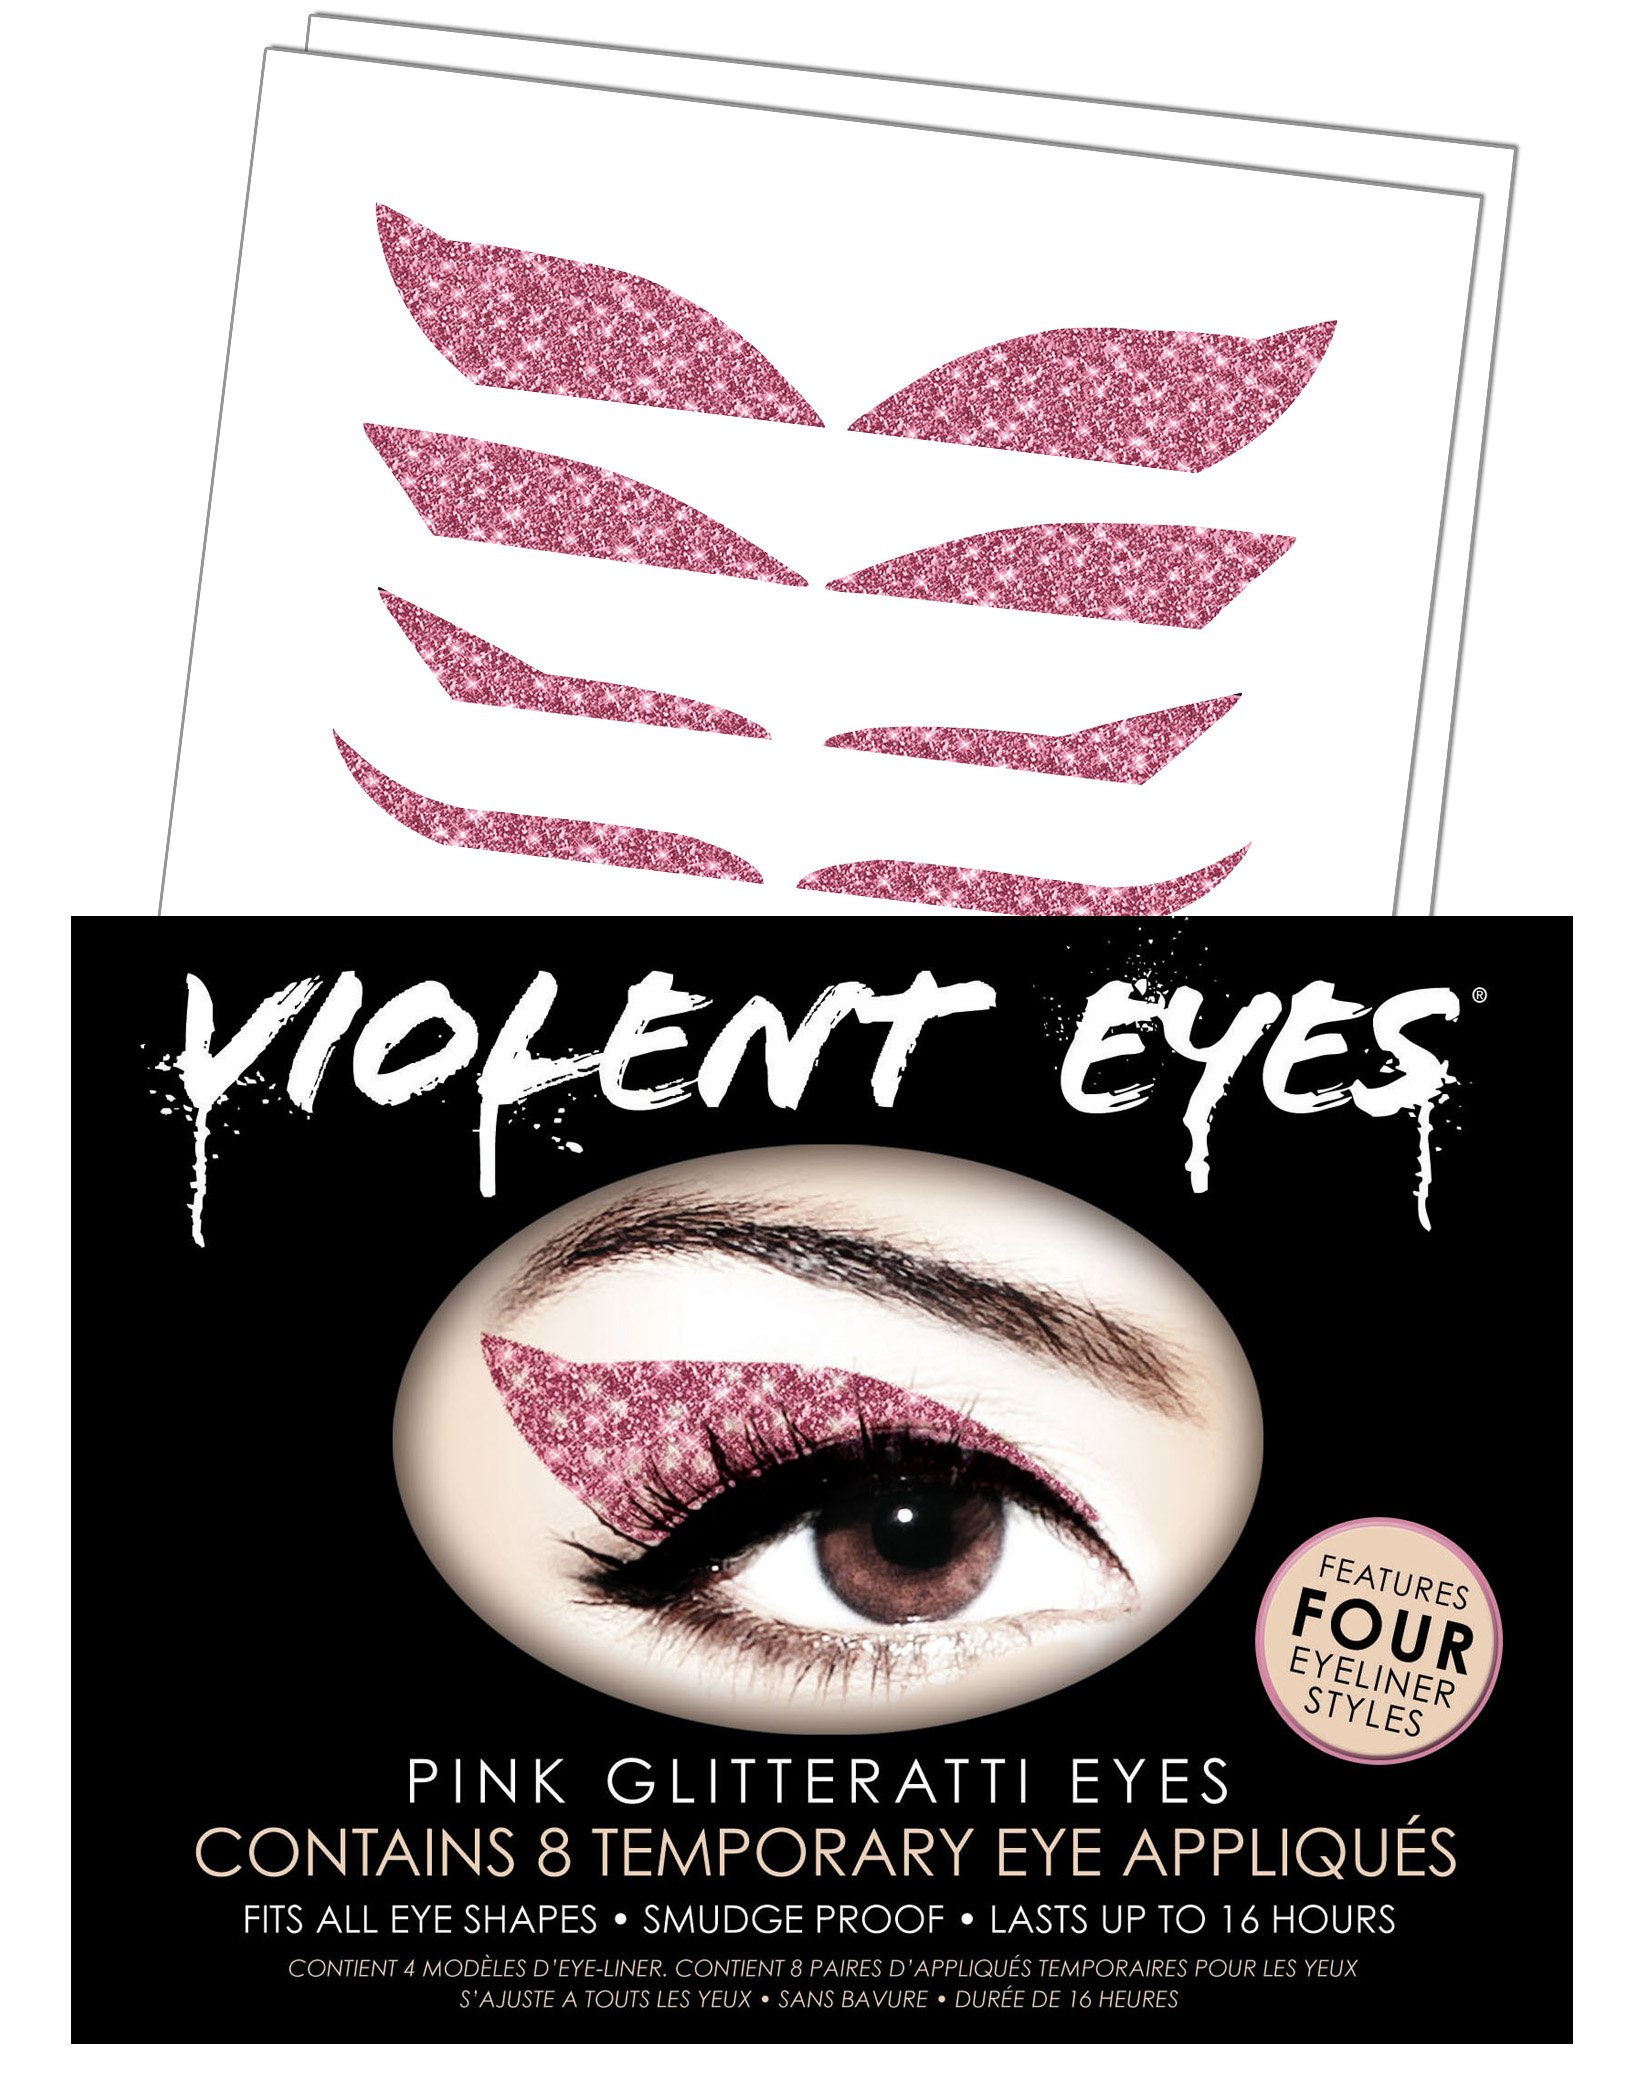 Violent Eyes - The Pink Glitteratti - Set of 8 Temporary Eye Appliques